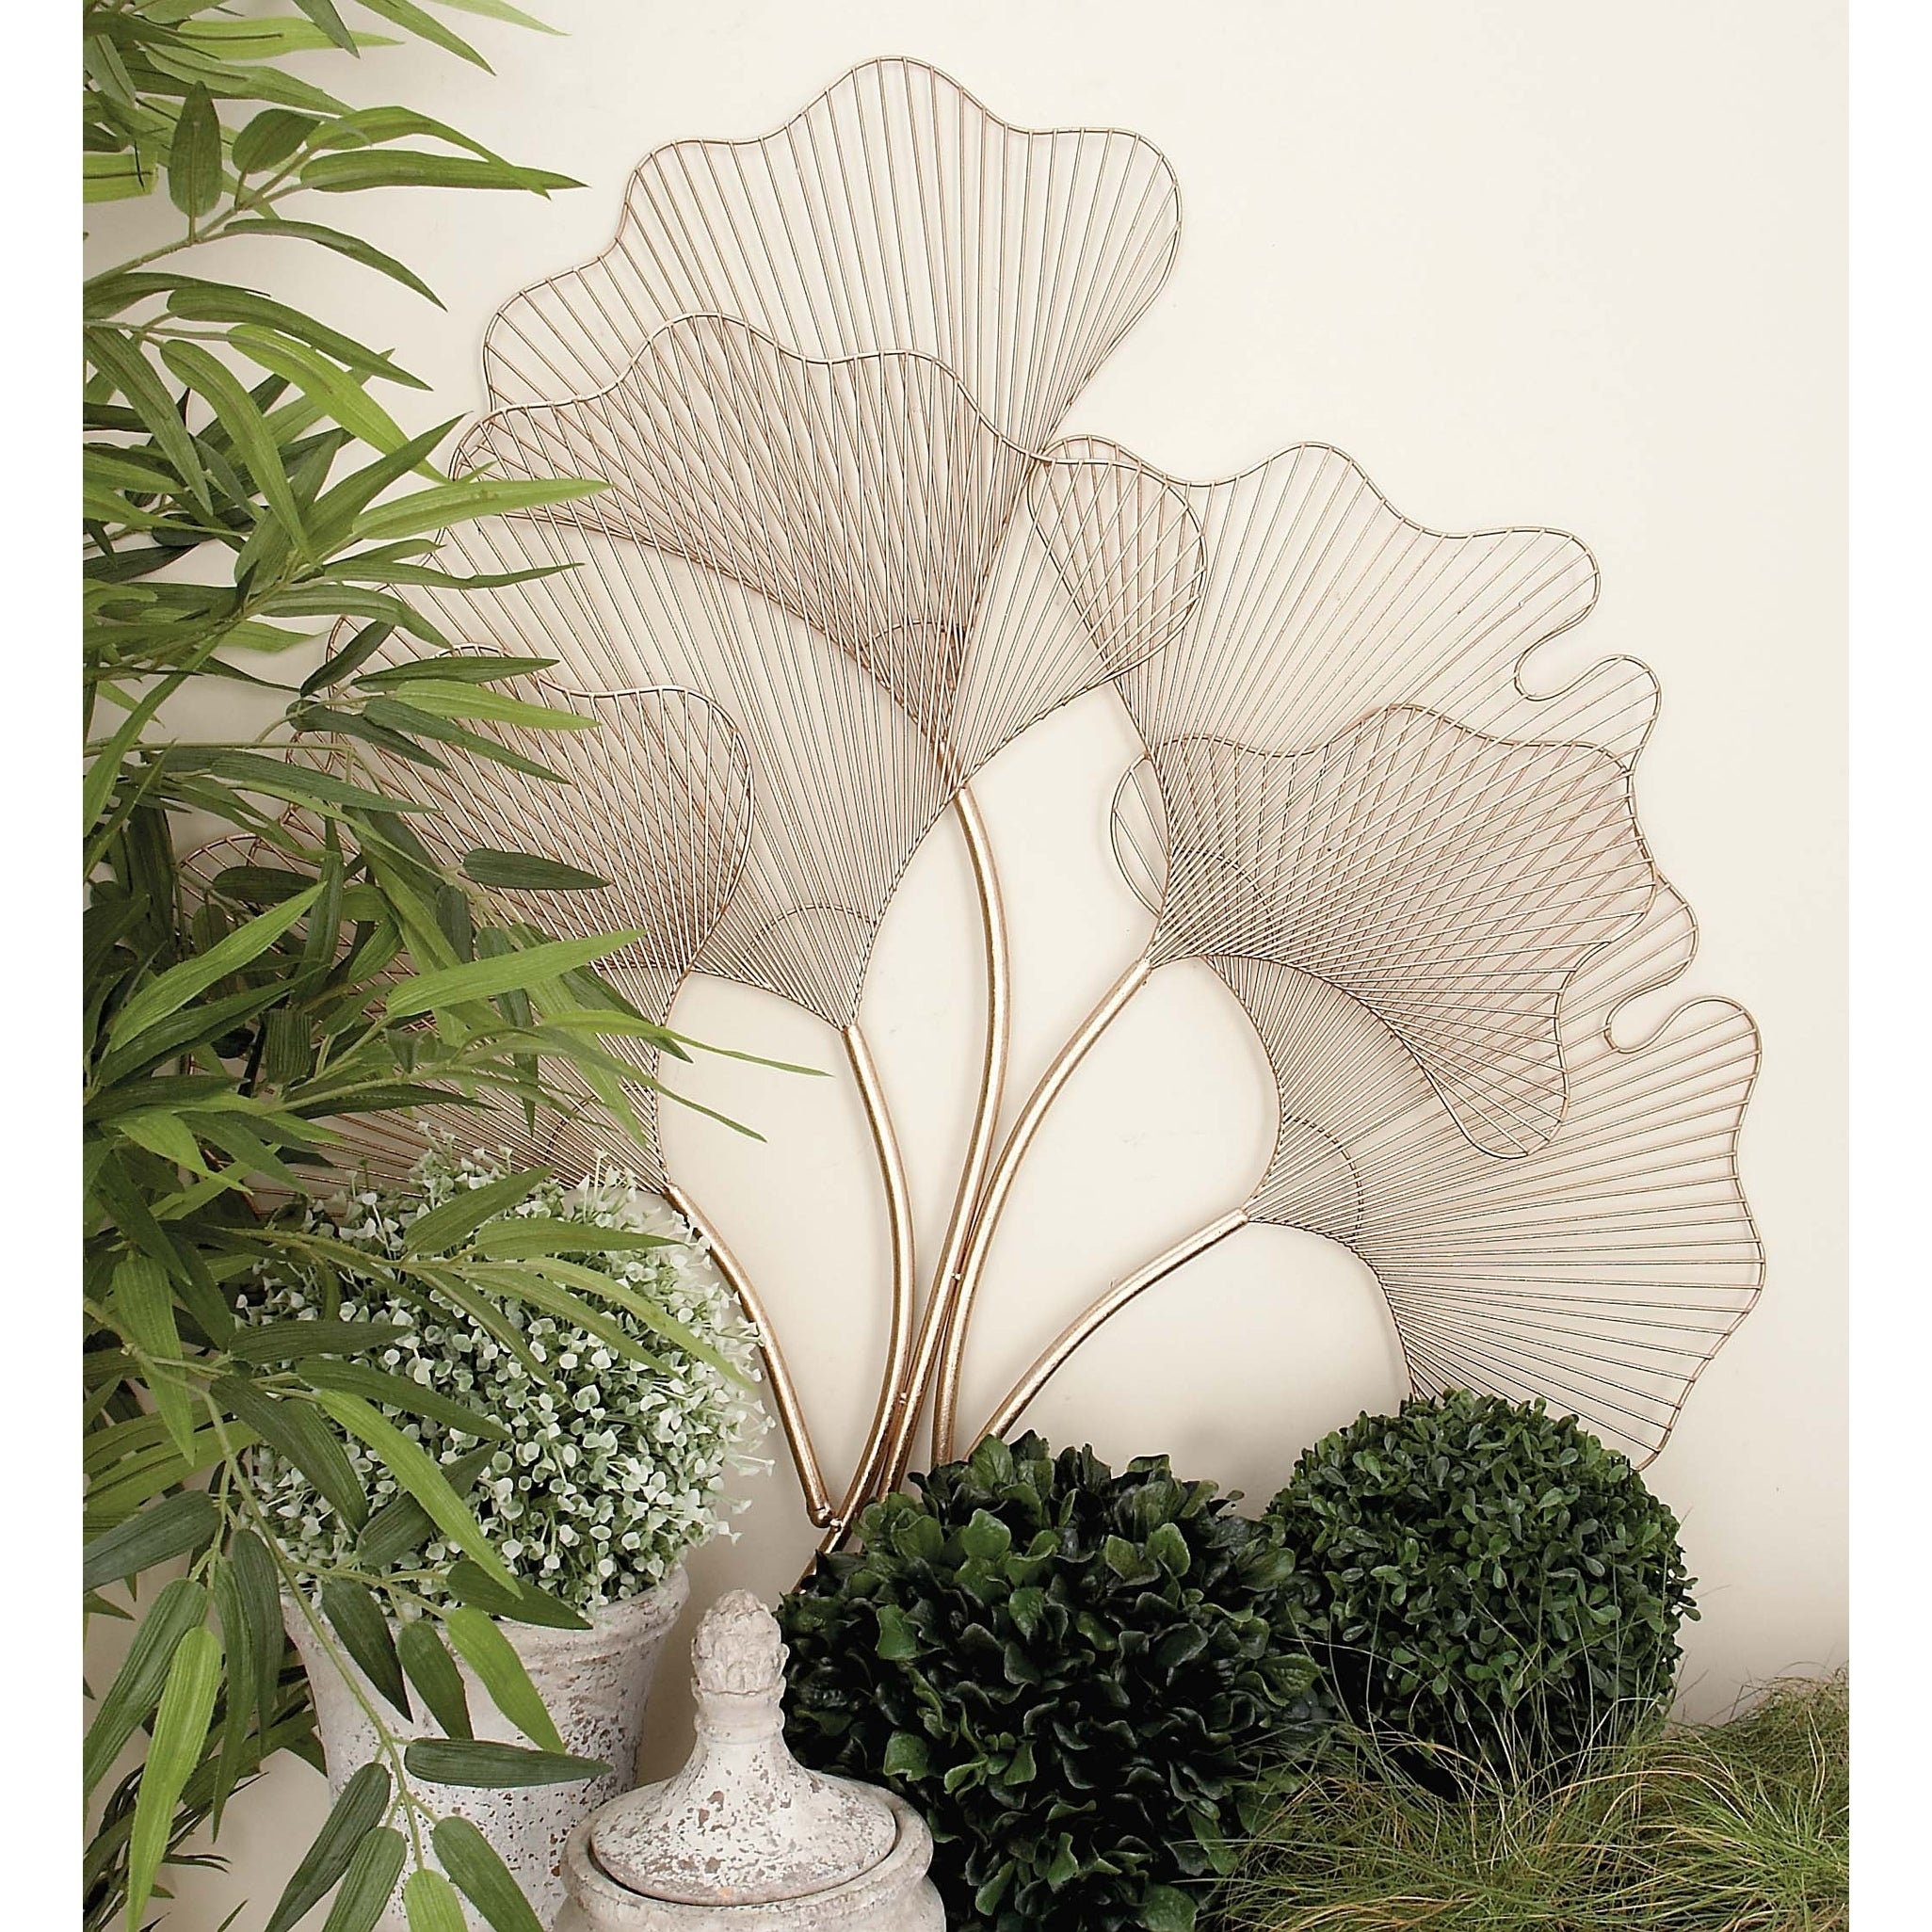 Natural 34 X 35 Inch Iron Wire Fan Leaves Wall Decorstudio 350 With Tree Shell Leaves Sculpture Wall Decor (View 21 of 30)